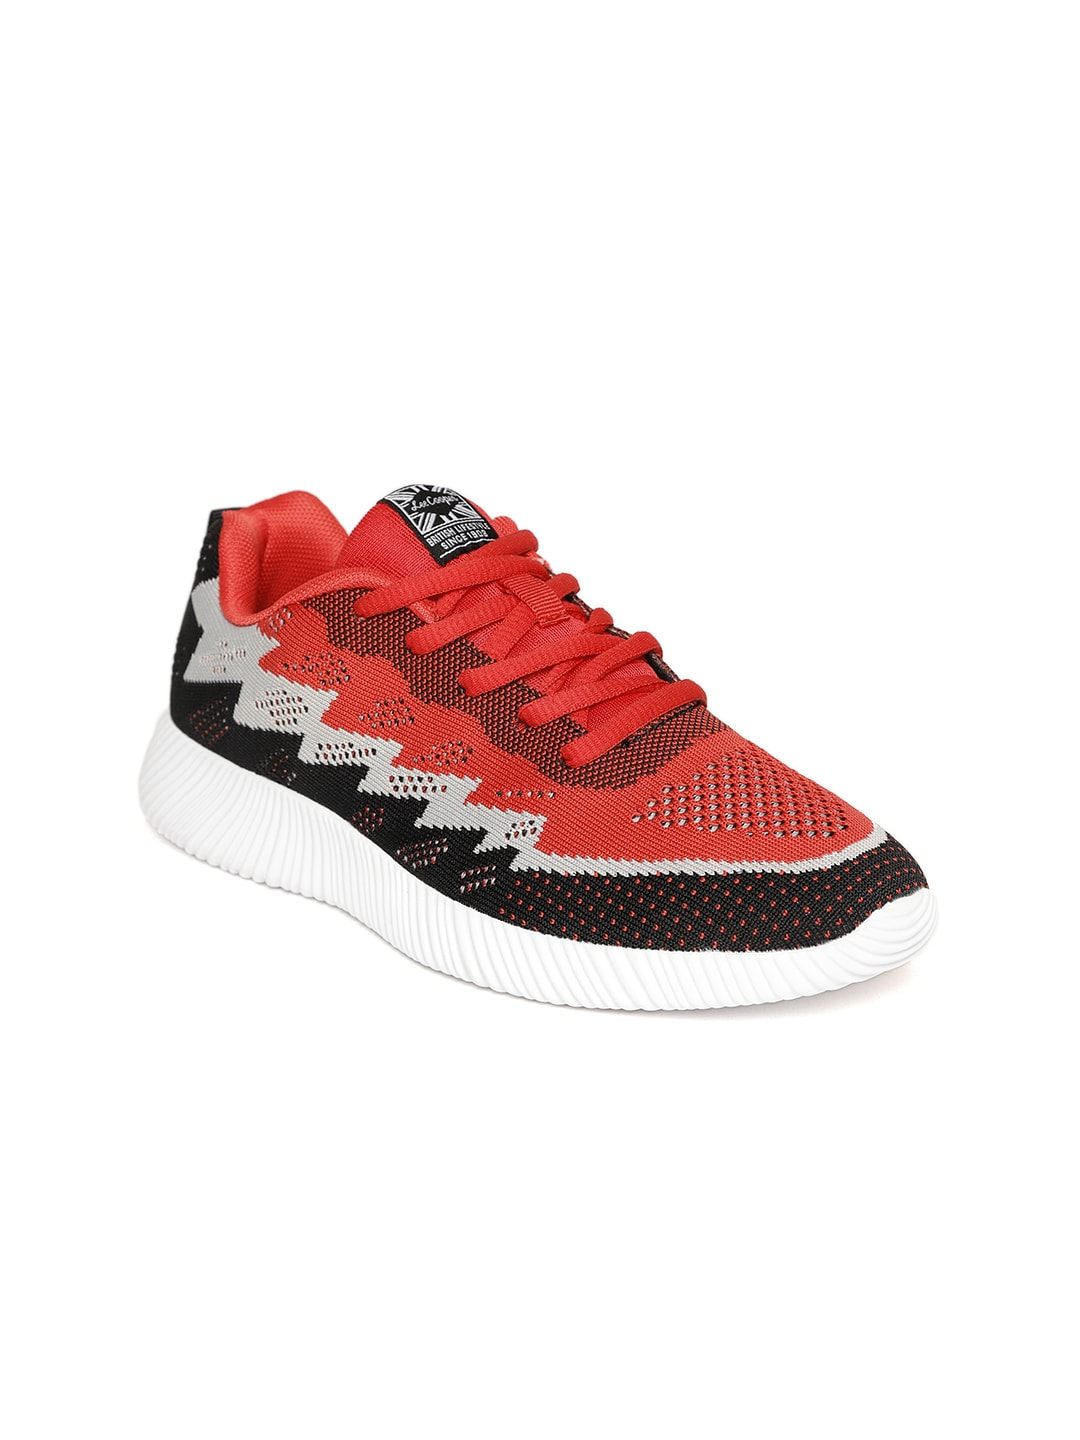 White Women Shoes Online India